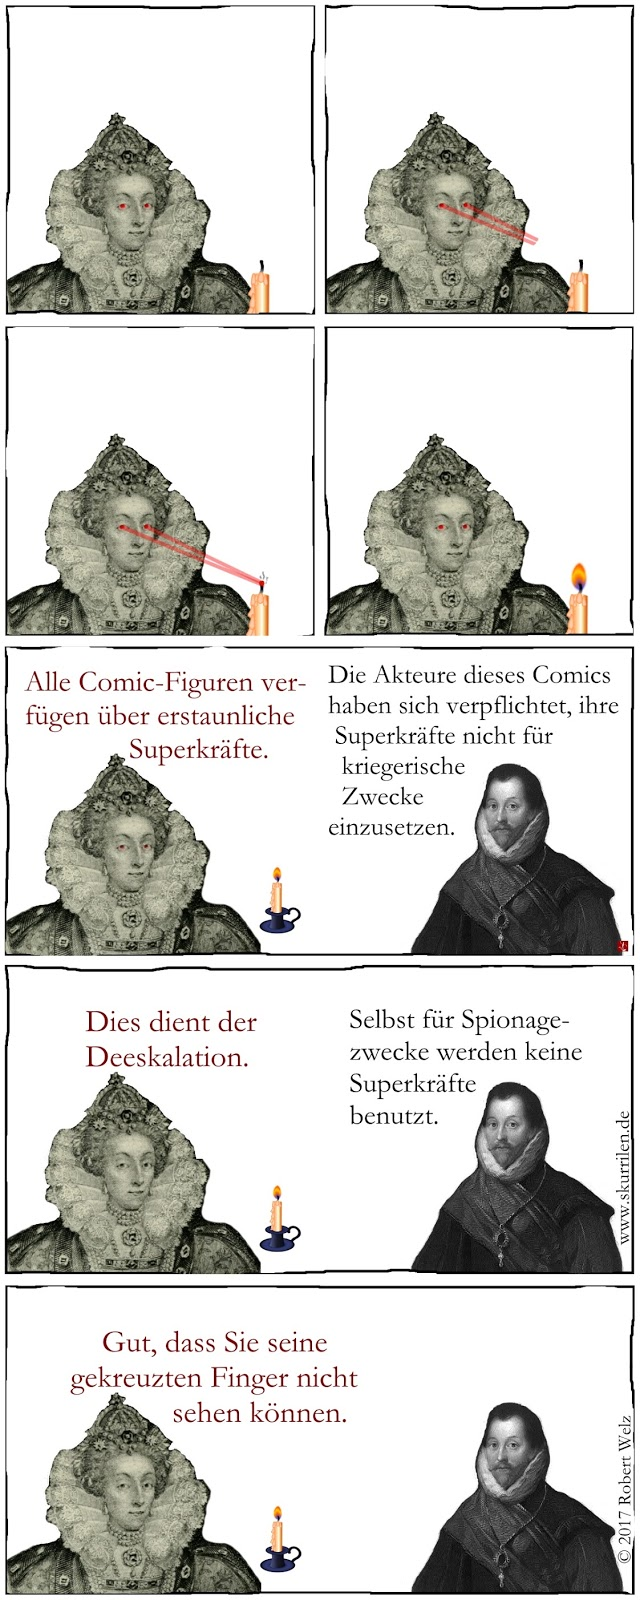 Superhelden Parodie Superkräfte Humor Komik Satire Comic Queen Elizabeth I. Pirat